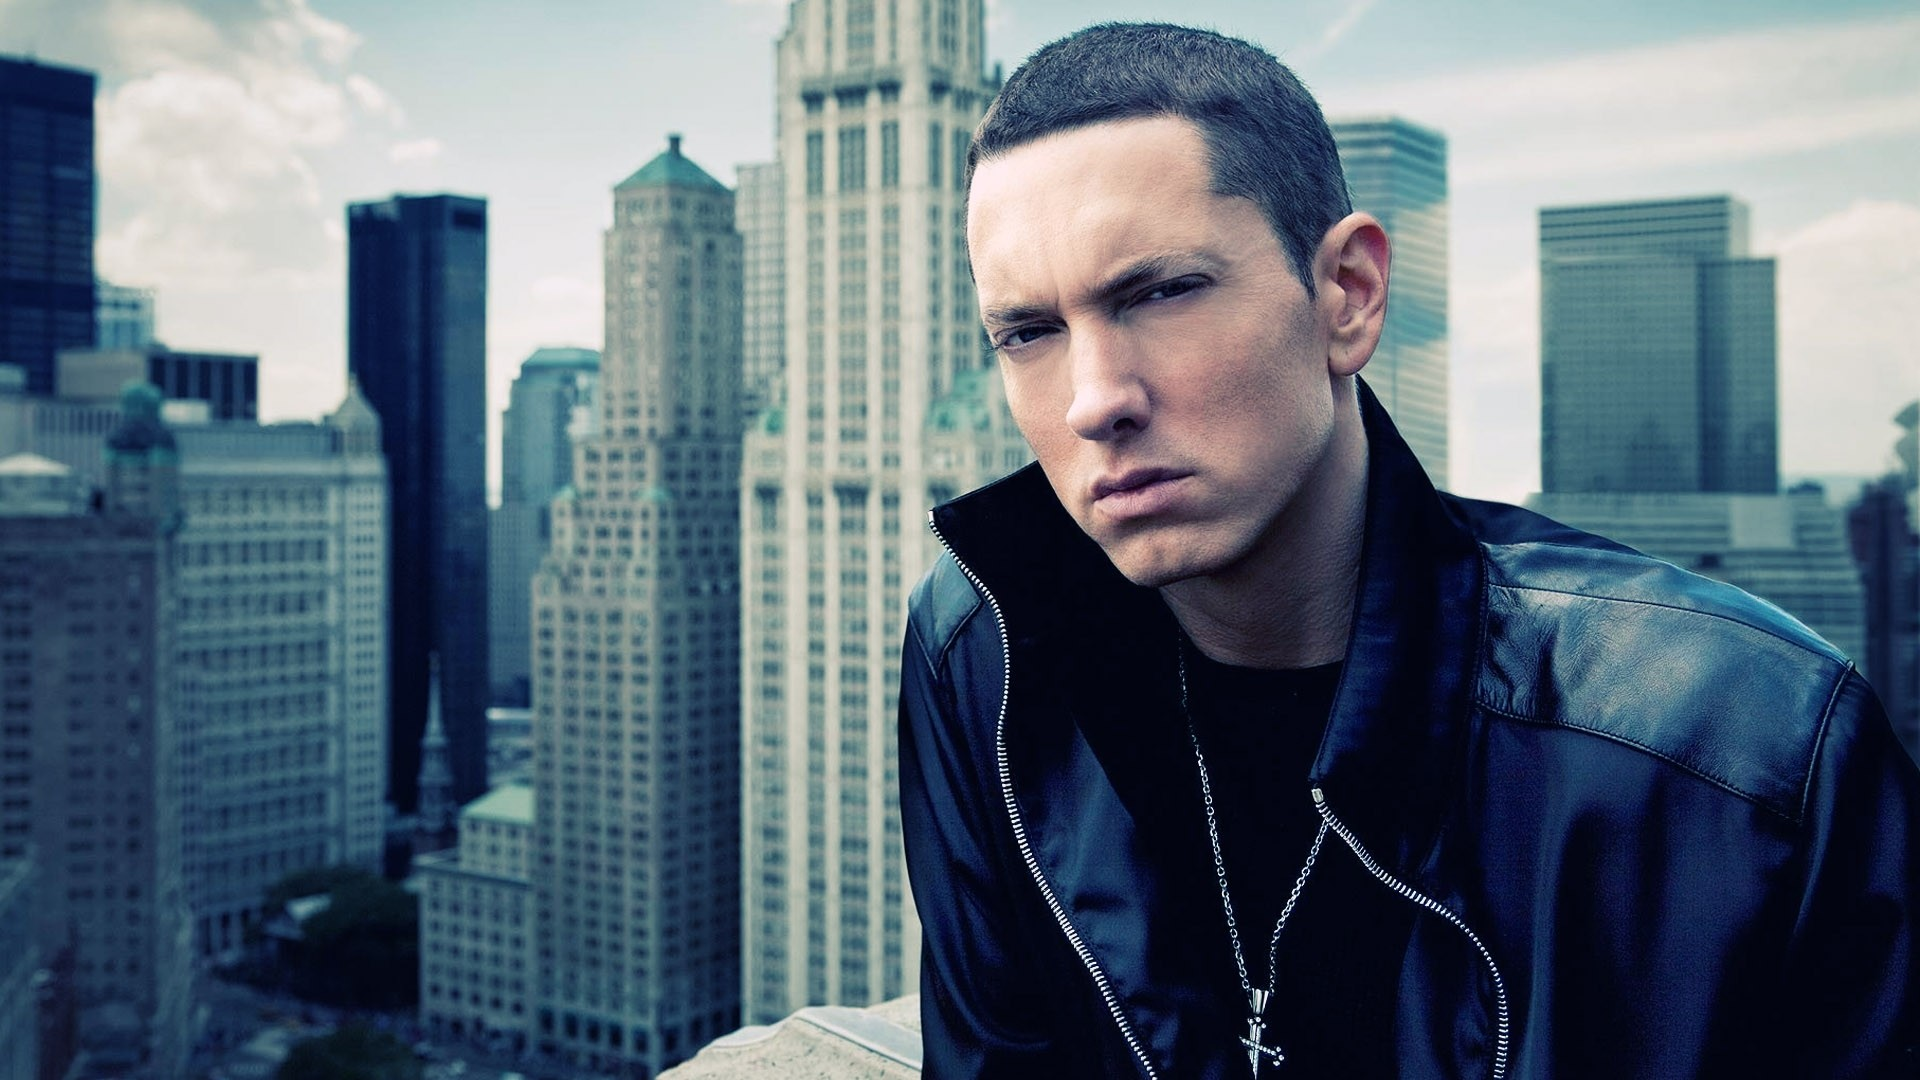 1920x1080 Eminem wallpaper | eminem-wallpaper-for--hdtv-1080p-741